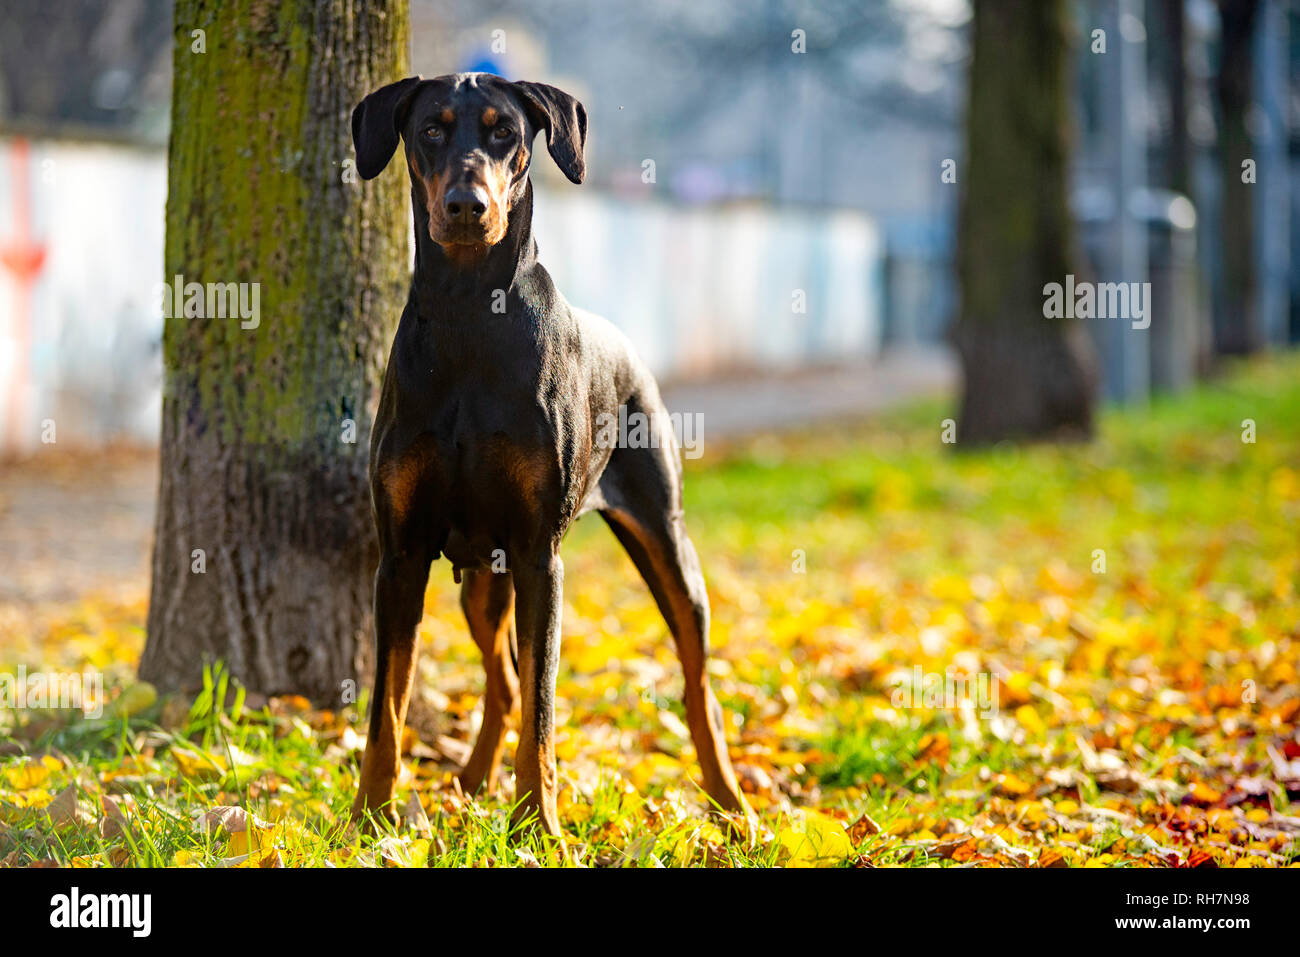 Dobermann pinscher is posing for the camera in an urban flowerbed - Stock Image